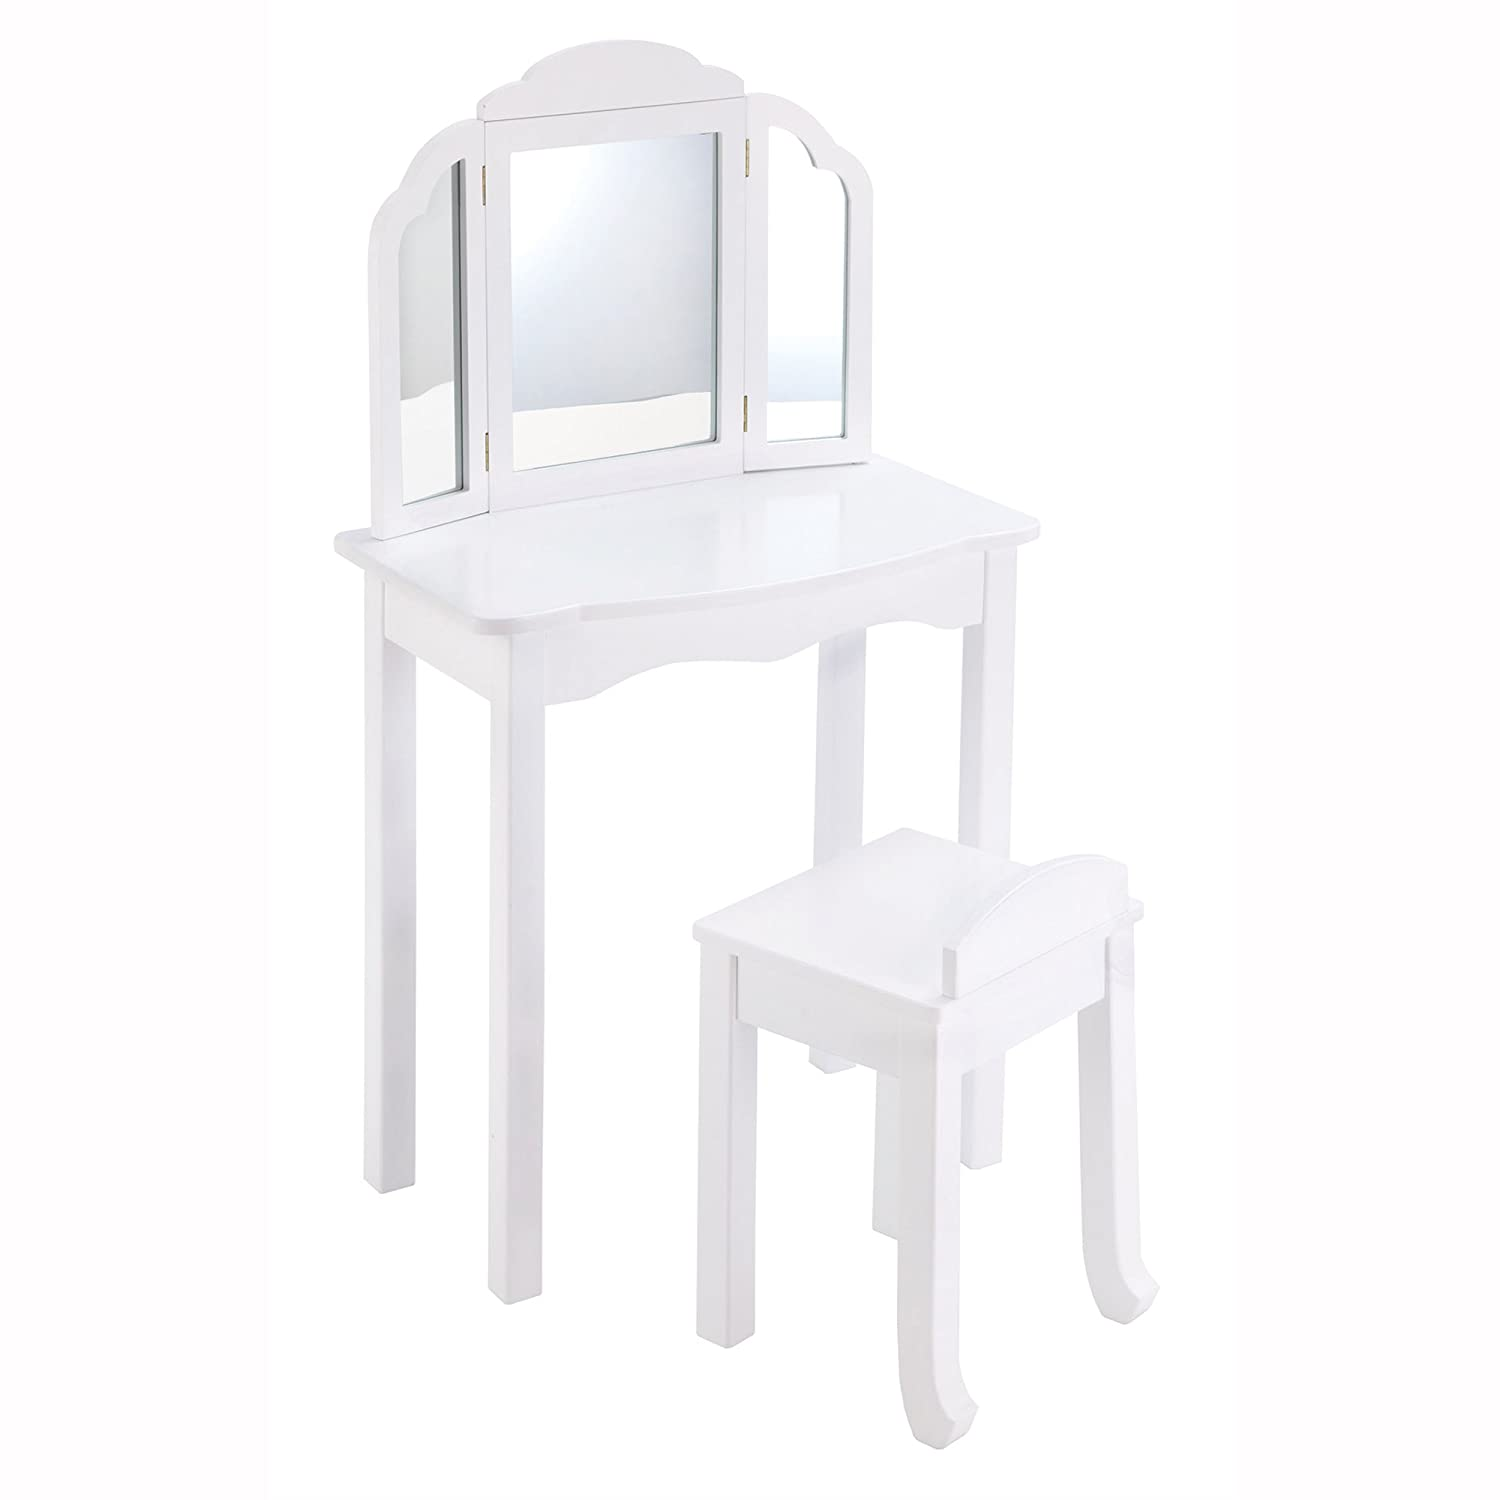 Amazon.com: Guidecraft White Expressions Wooden Vanity Table And Stool Set  With 3 Mirrors: Kids Room Furniture: Toys U0026 Games